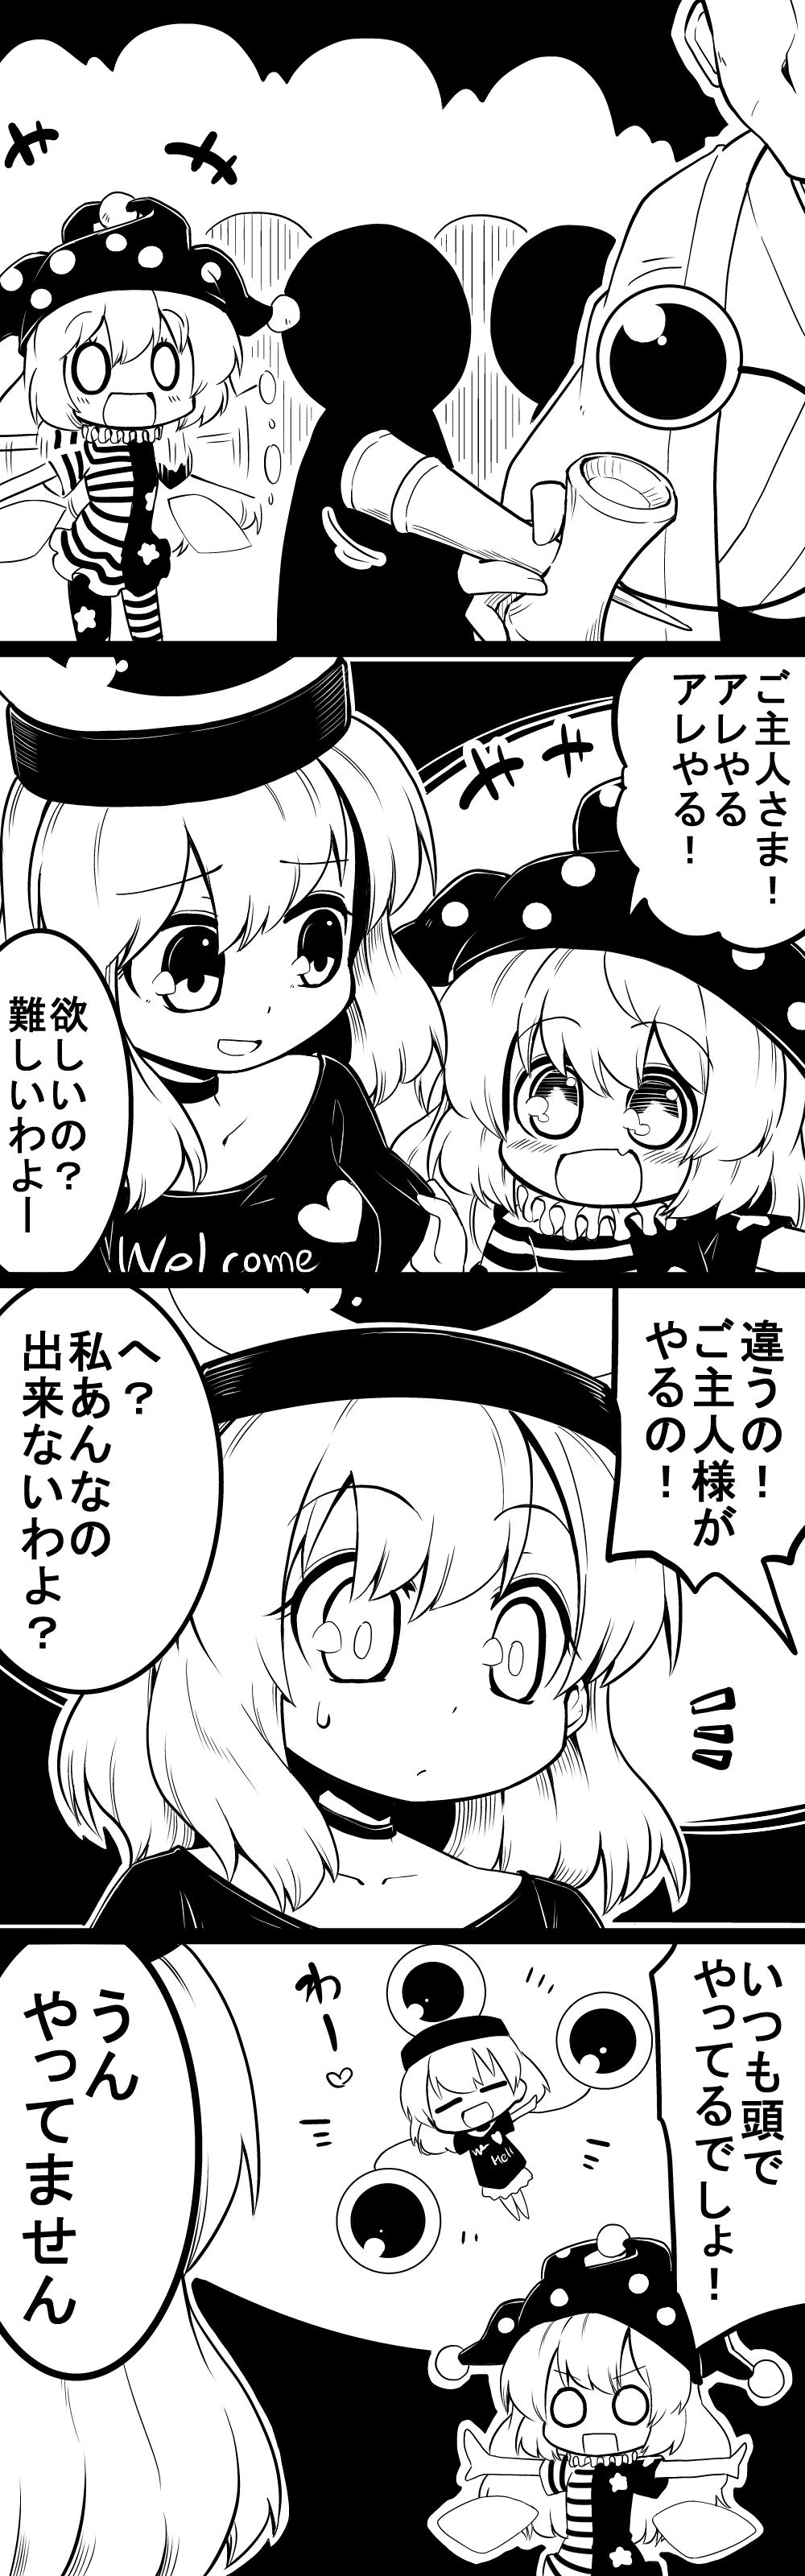 +++ 0_0 1boy 2girls 4koma absurdres american_flag_dress american_flag_legwear ball bangs blank_eyes choker clothes_writing clownpiece comic eyebrows eyebrows_visible_through_hair futa_(nabezoko) greyscale hat hecatia_lapislazuli highres imagining japanese_clothes jester_cap kendama long_hair monochrome multiple_girls o_o open_mouth outstretched_arms polos_crown shirt sleeve_tug smile sparkling_eyes spread_arms star sweatdrop t-shirt touhou toy translation_request wings